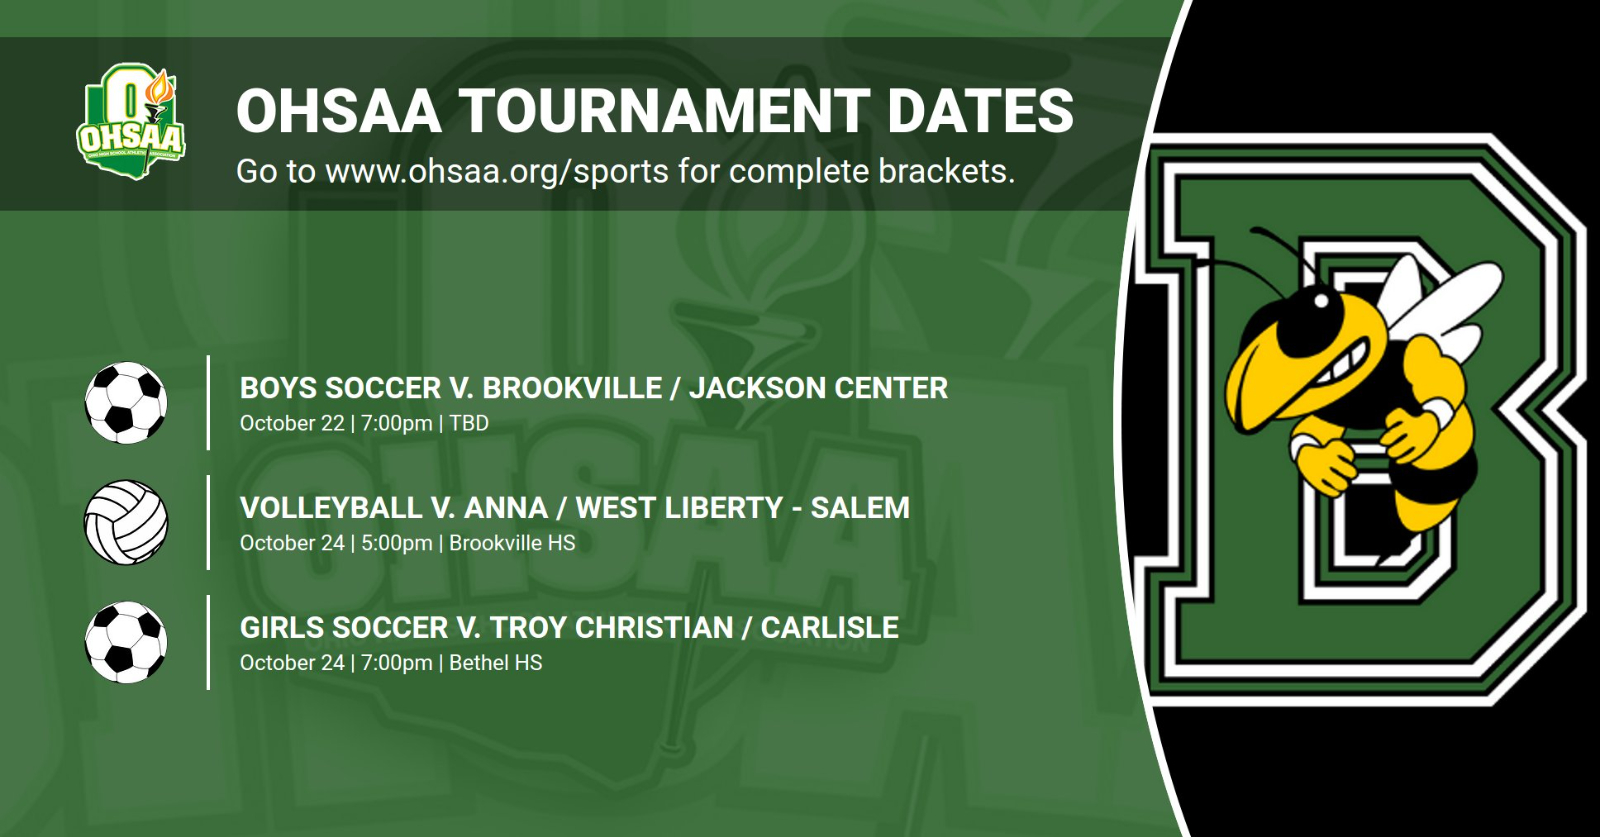 Fall OHSAA Tournaments Set!